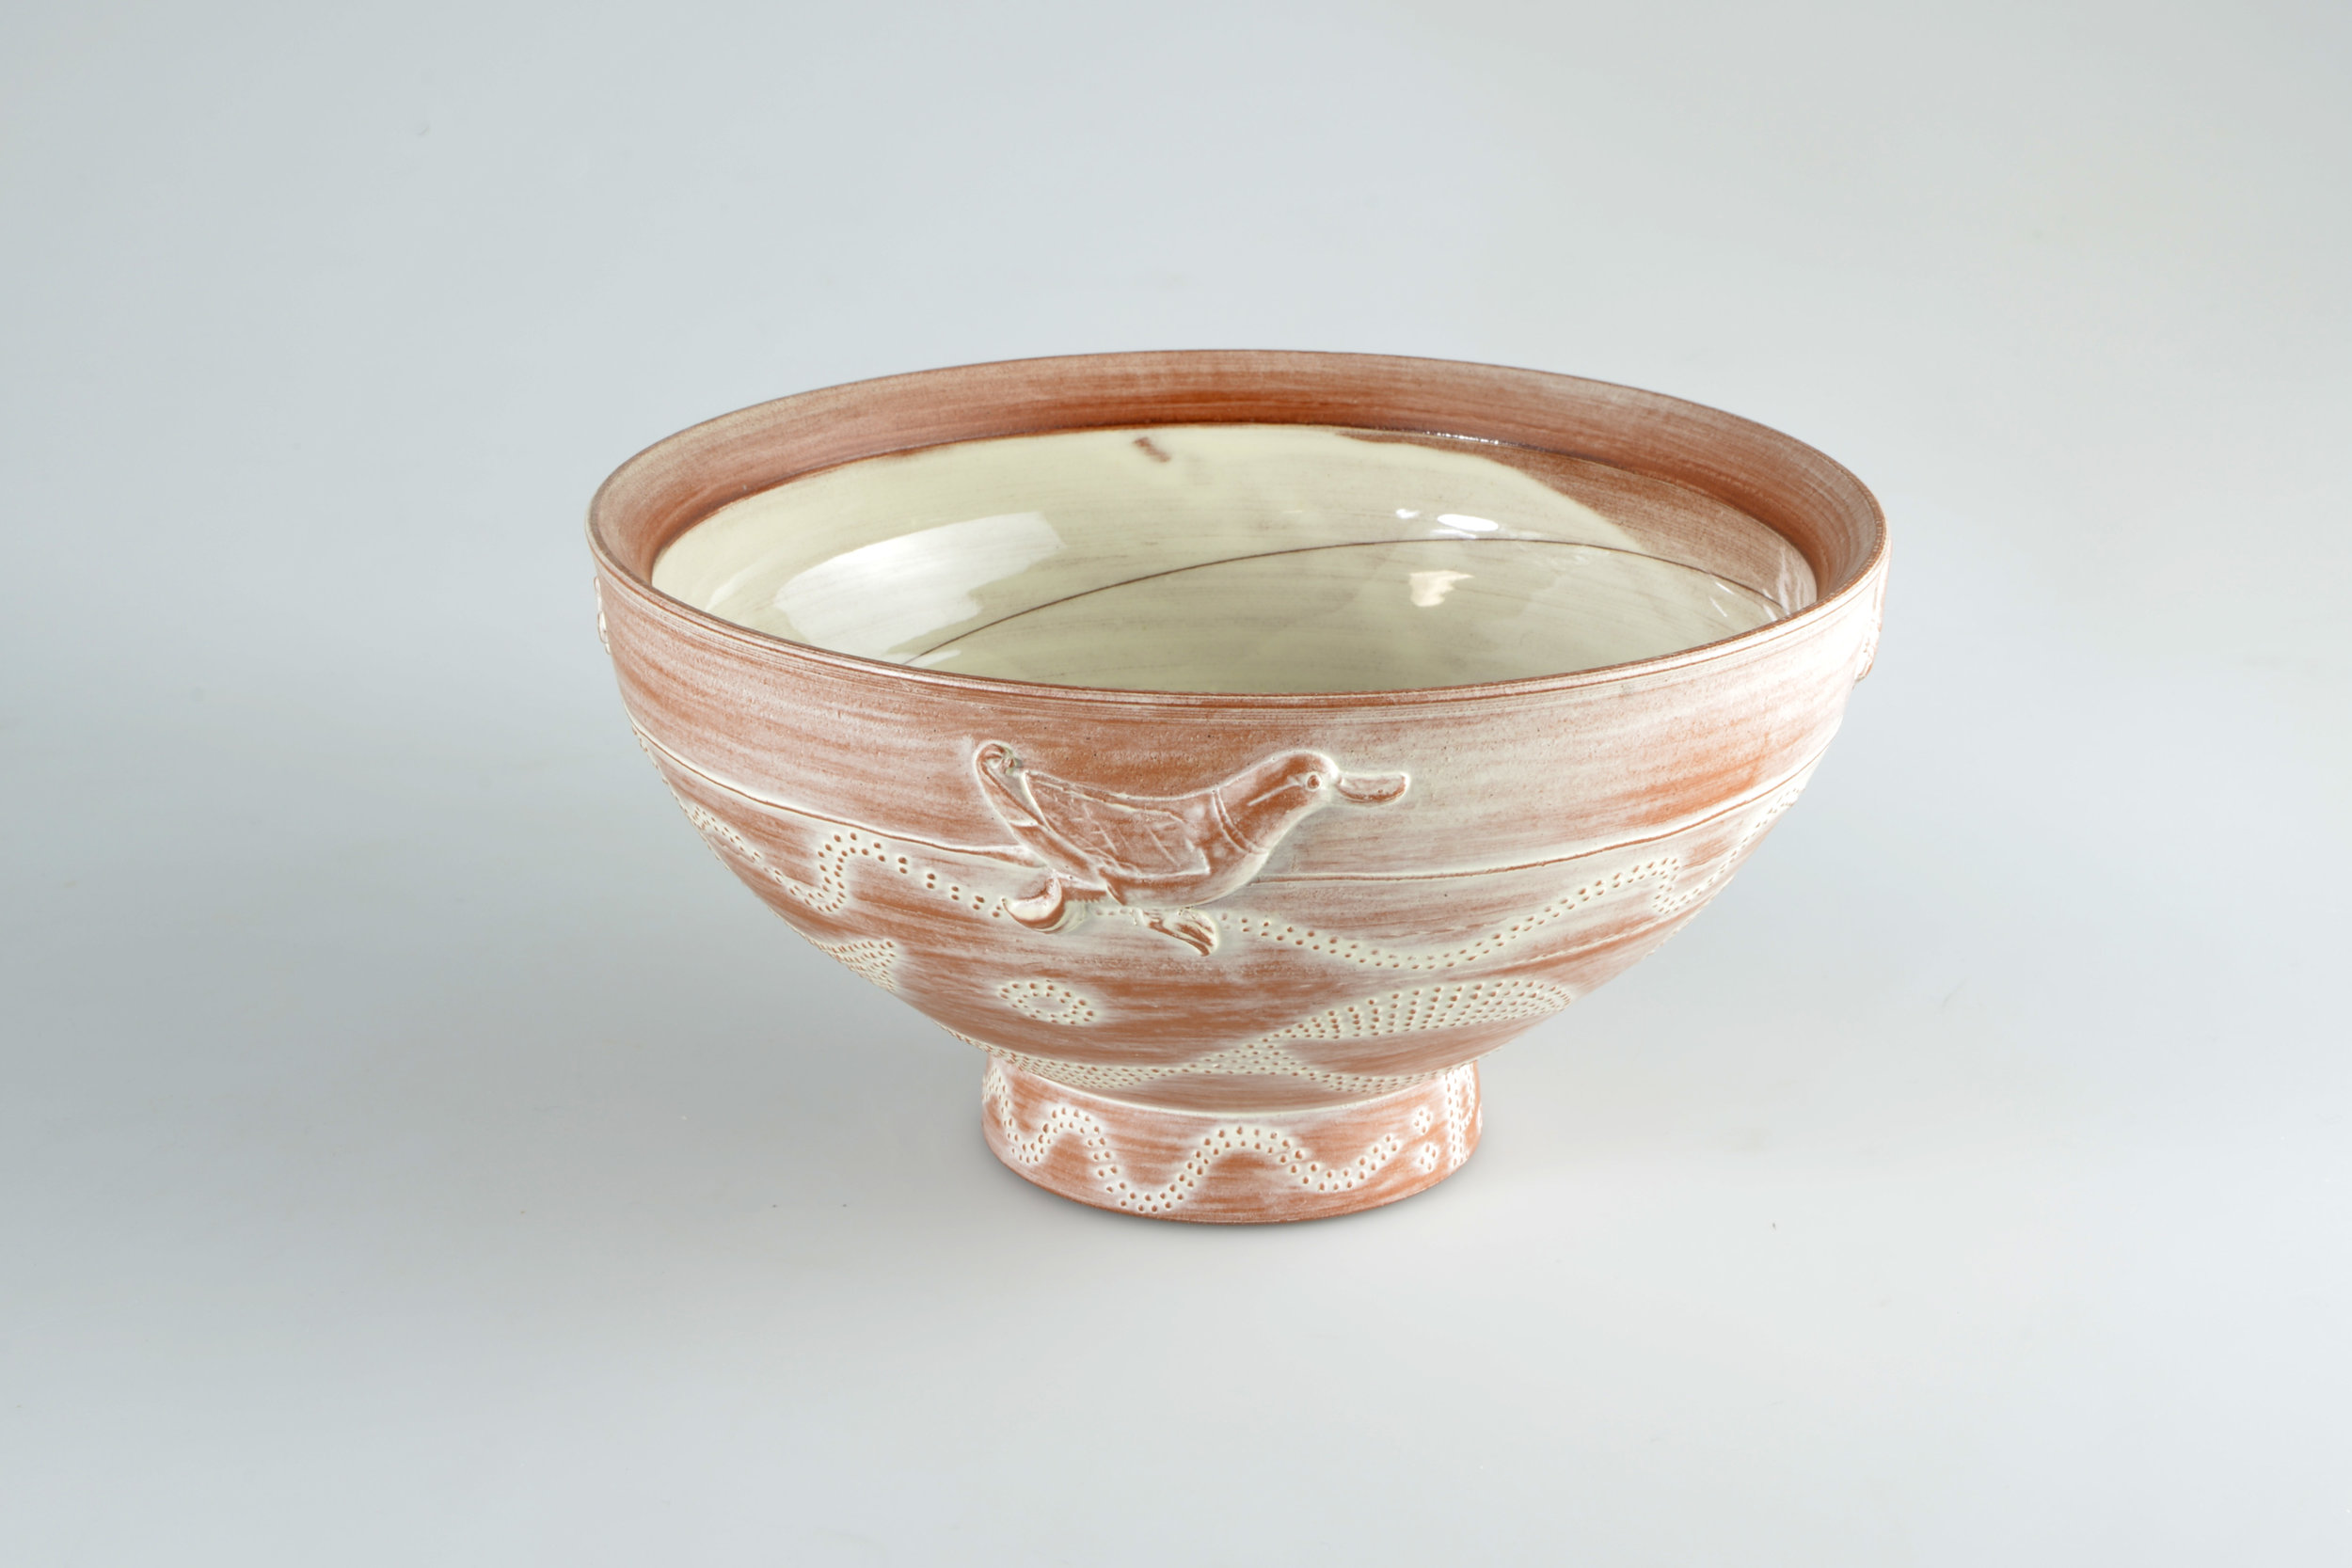 earthenware BOWL BY philip wood